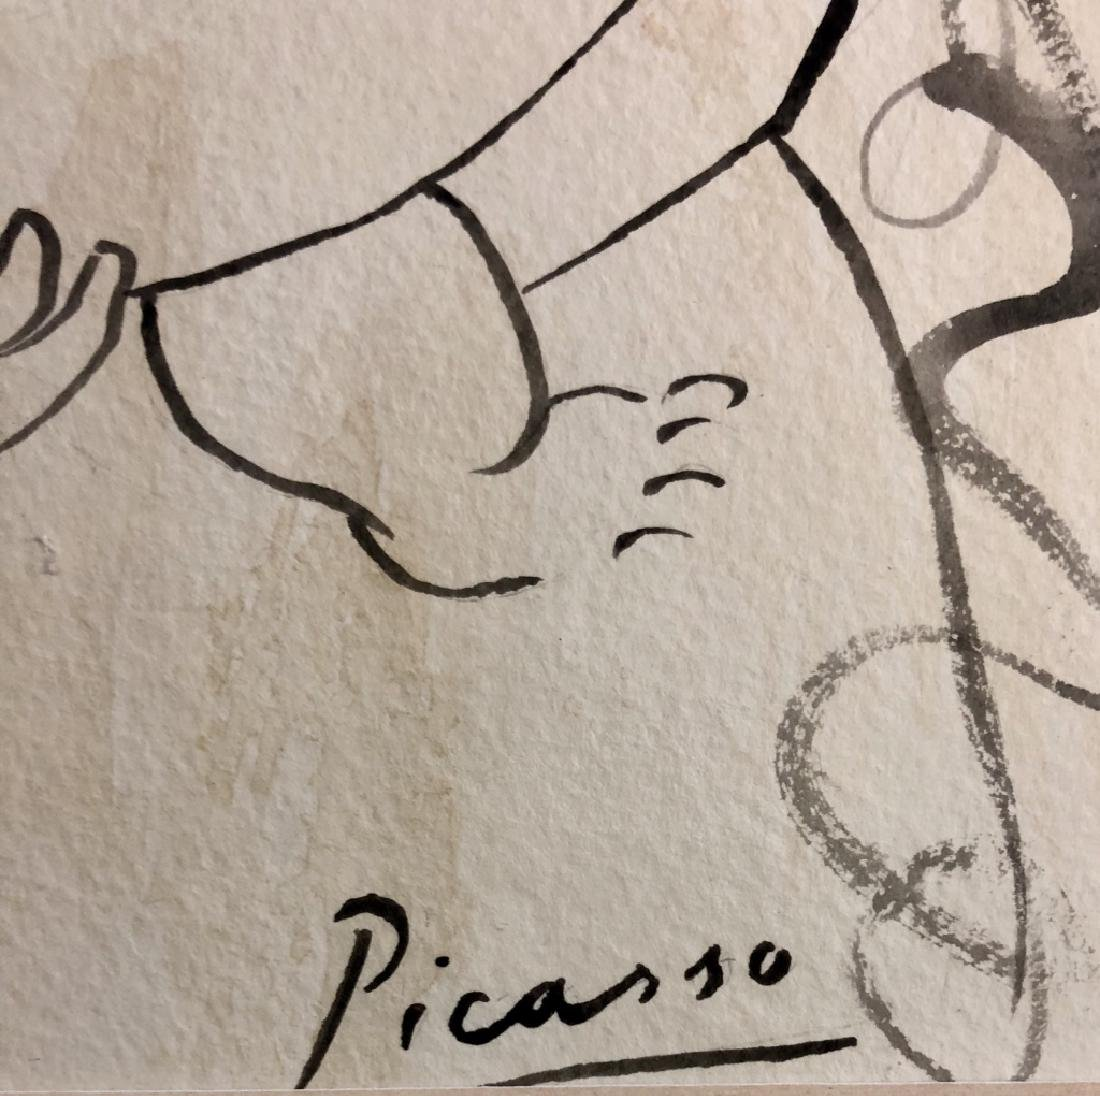 PABLO PICASSO INDIA INK ON PAPER V$9,200 - 3